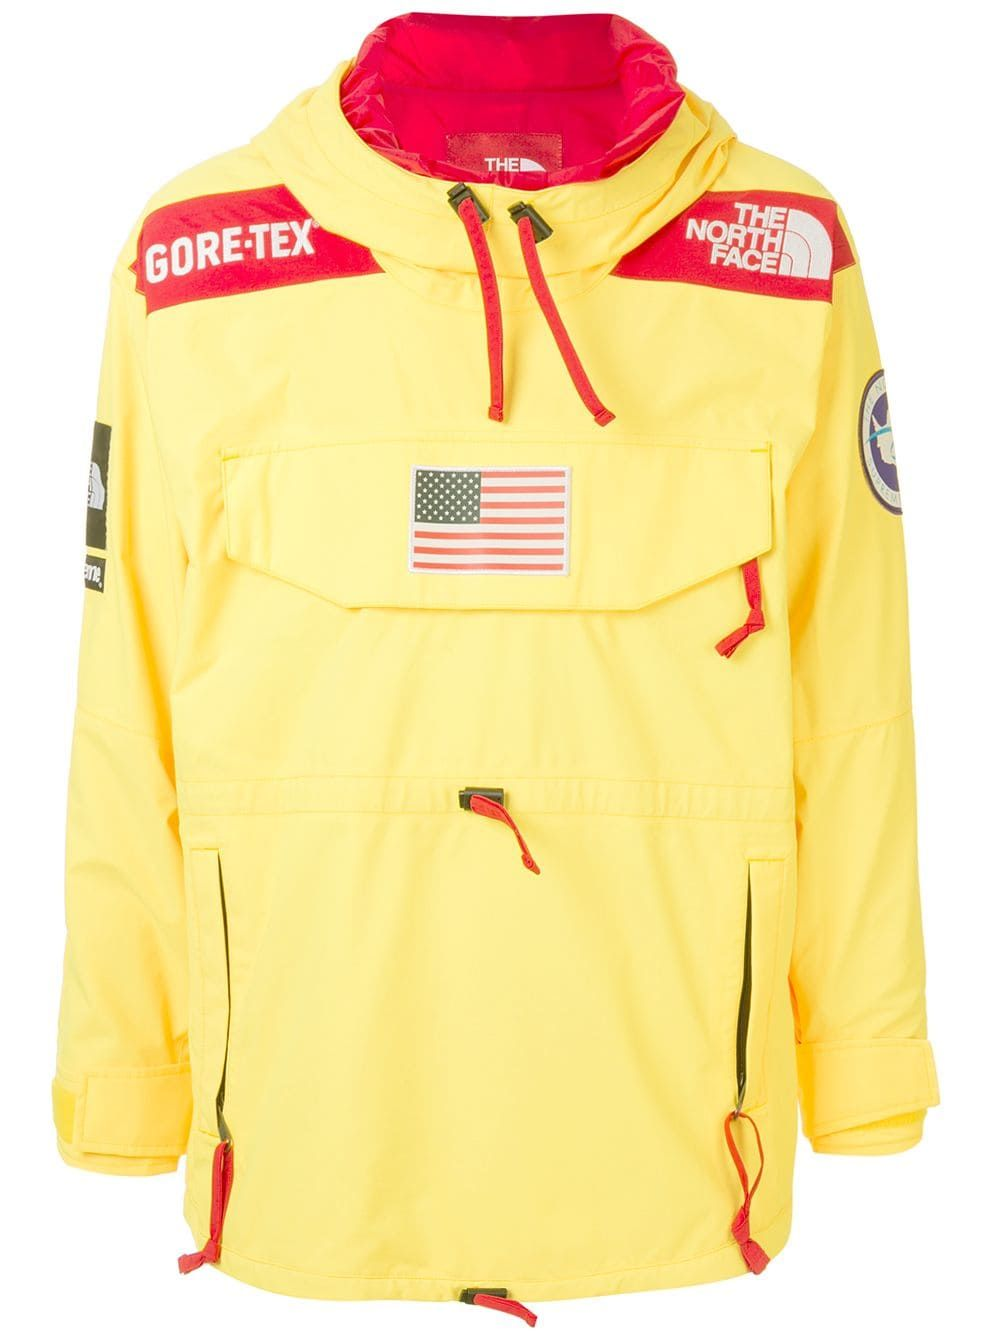 Supreme X The North Face Expedition Pullover Jacket Farfetch In 2021 Pullover Jacket Streetwear Jackets Pullover [ 1334 x 1000 Pixel ]